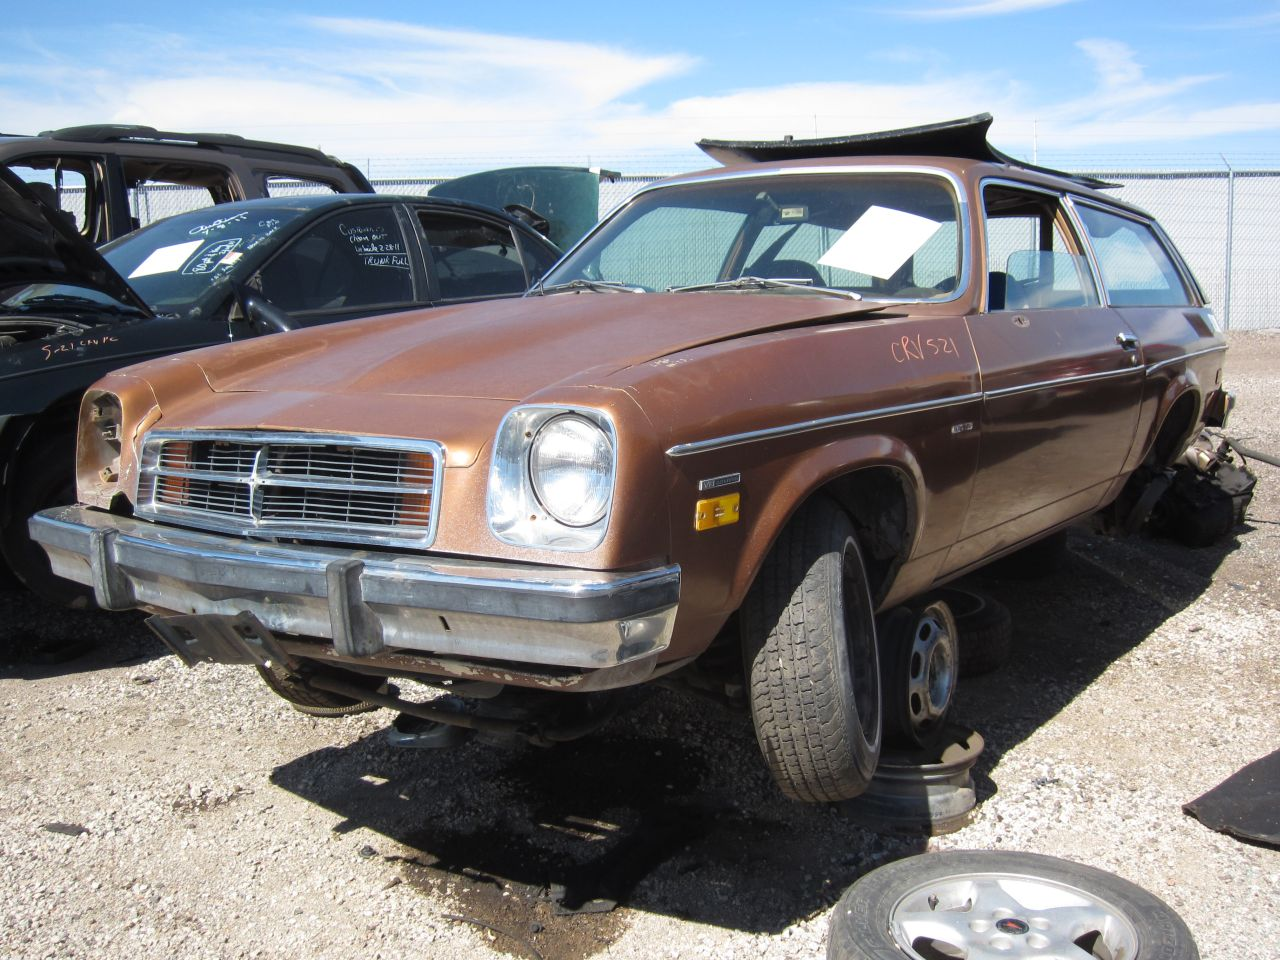 All Chevy 1977 chevrolet monza : Junkyard Find: 1979 Chevrolet Monza Wagon - The Truth About Cars